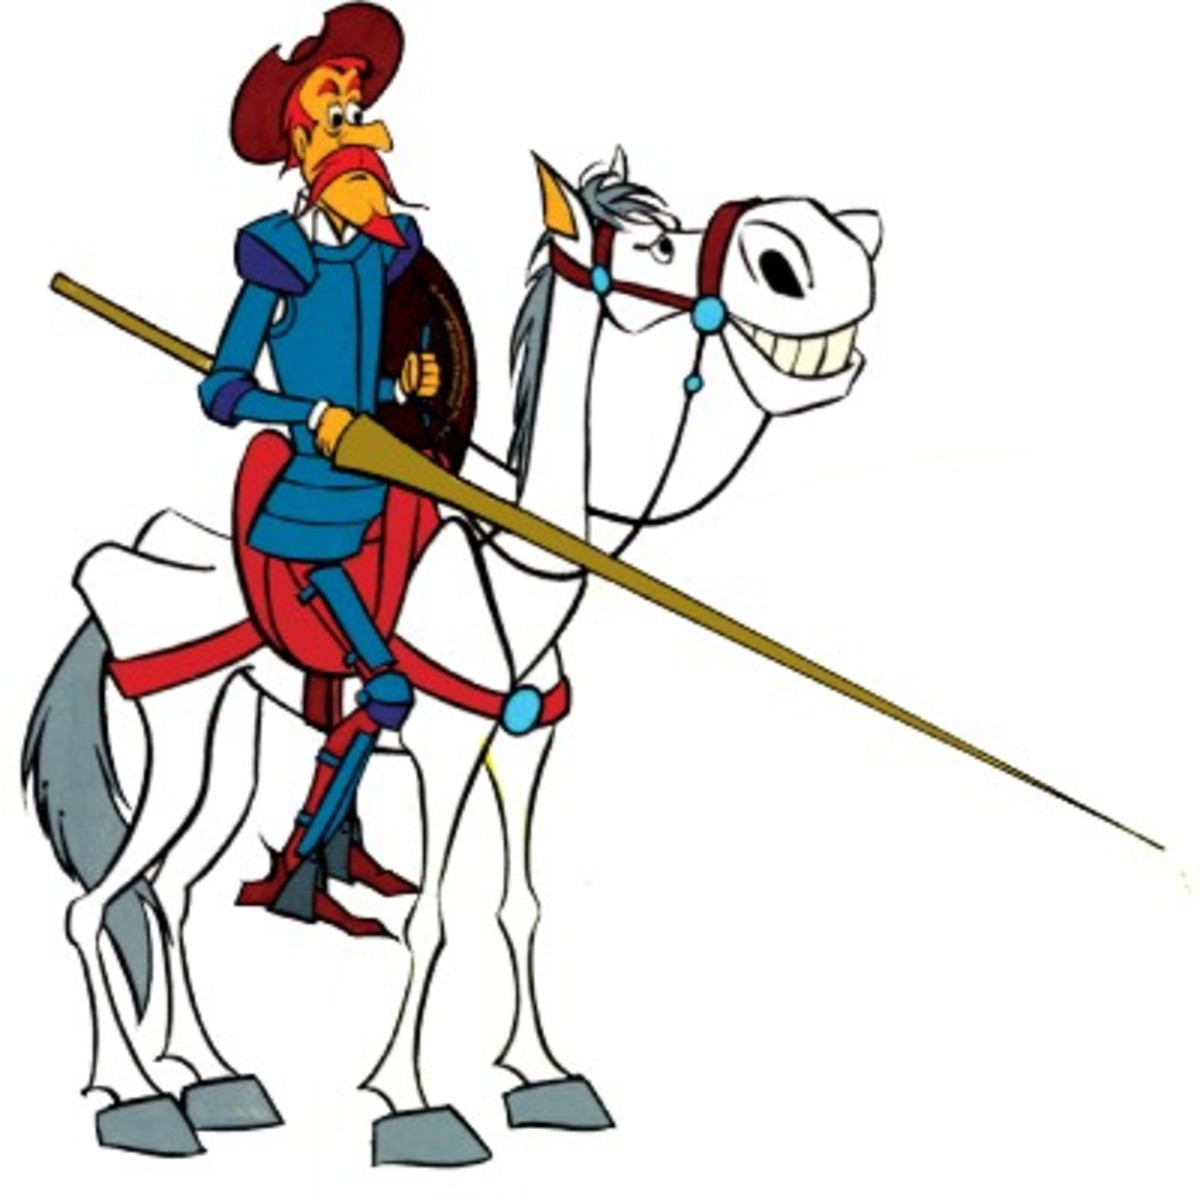 Don Quixote and his steed  Rocinante